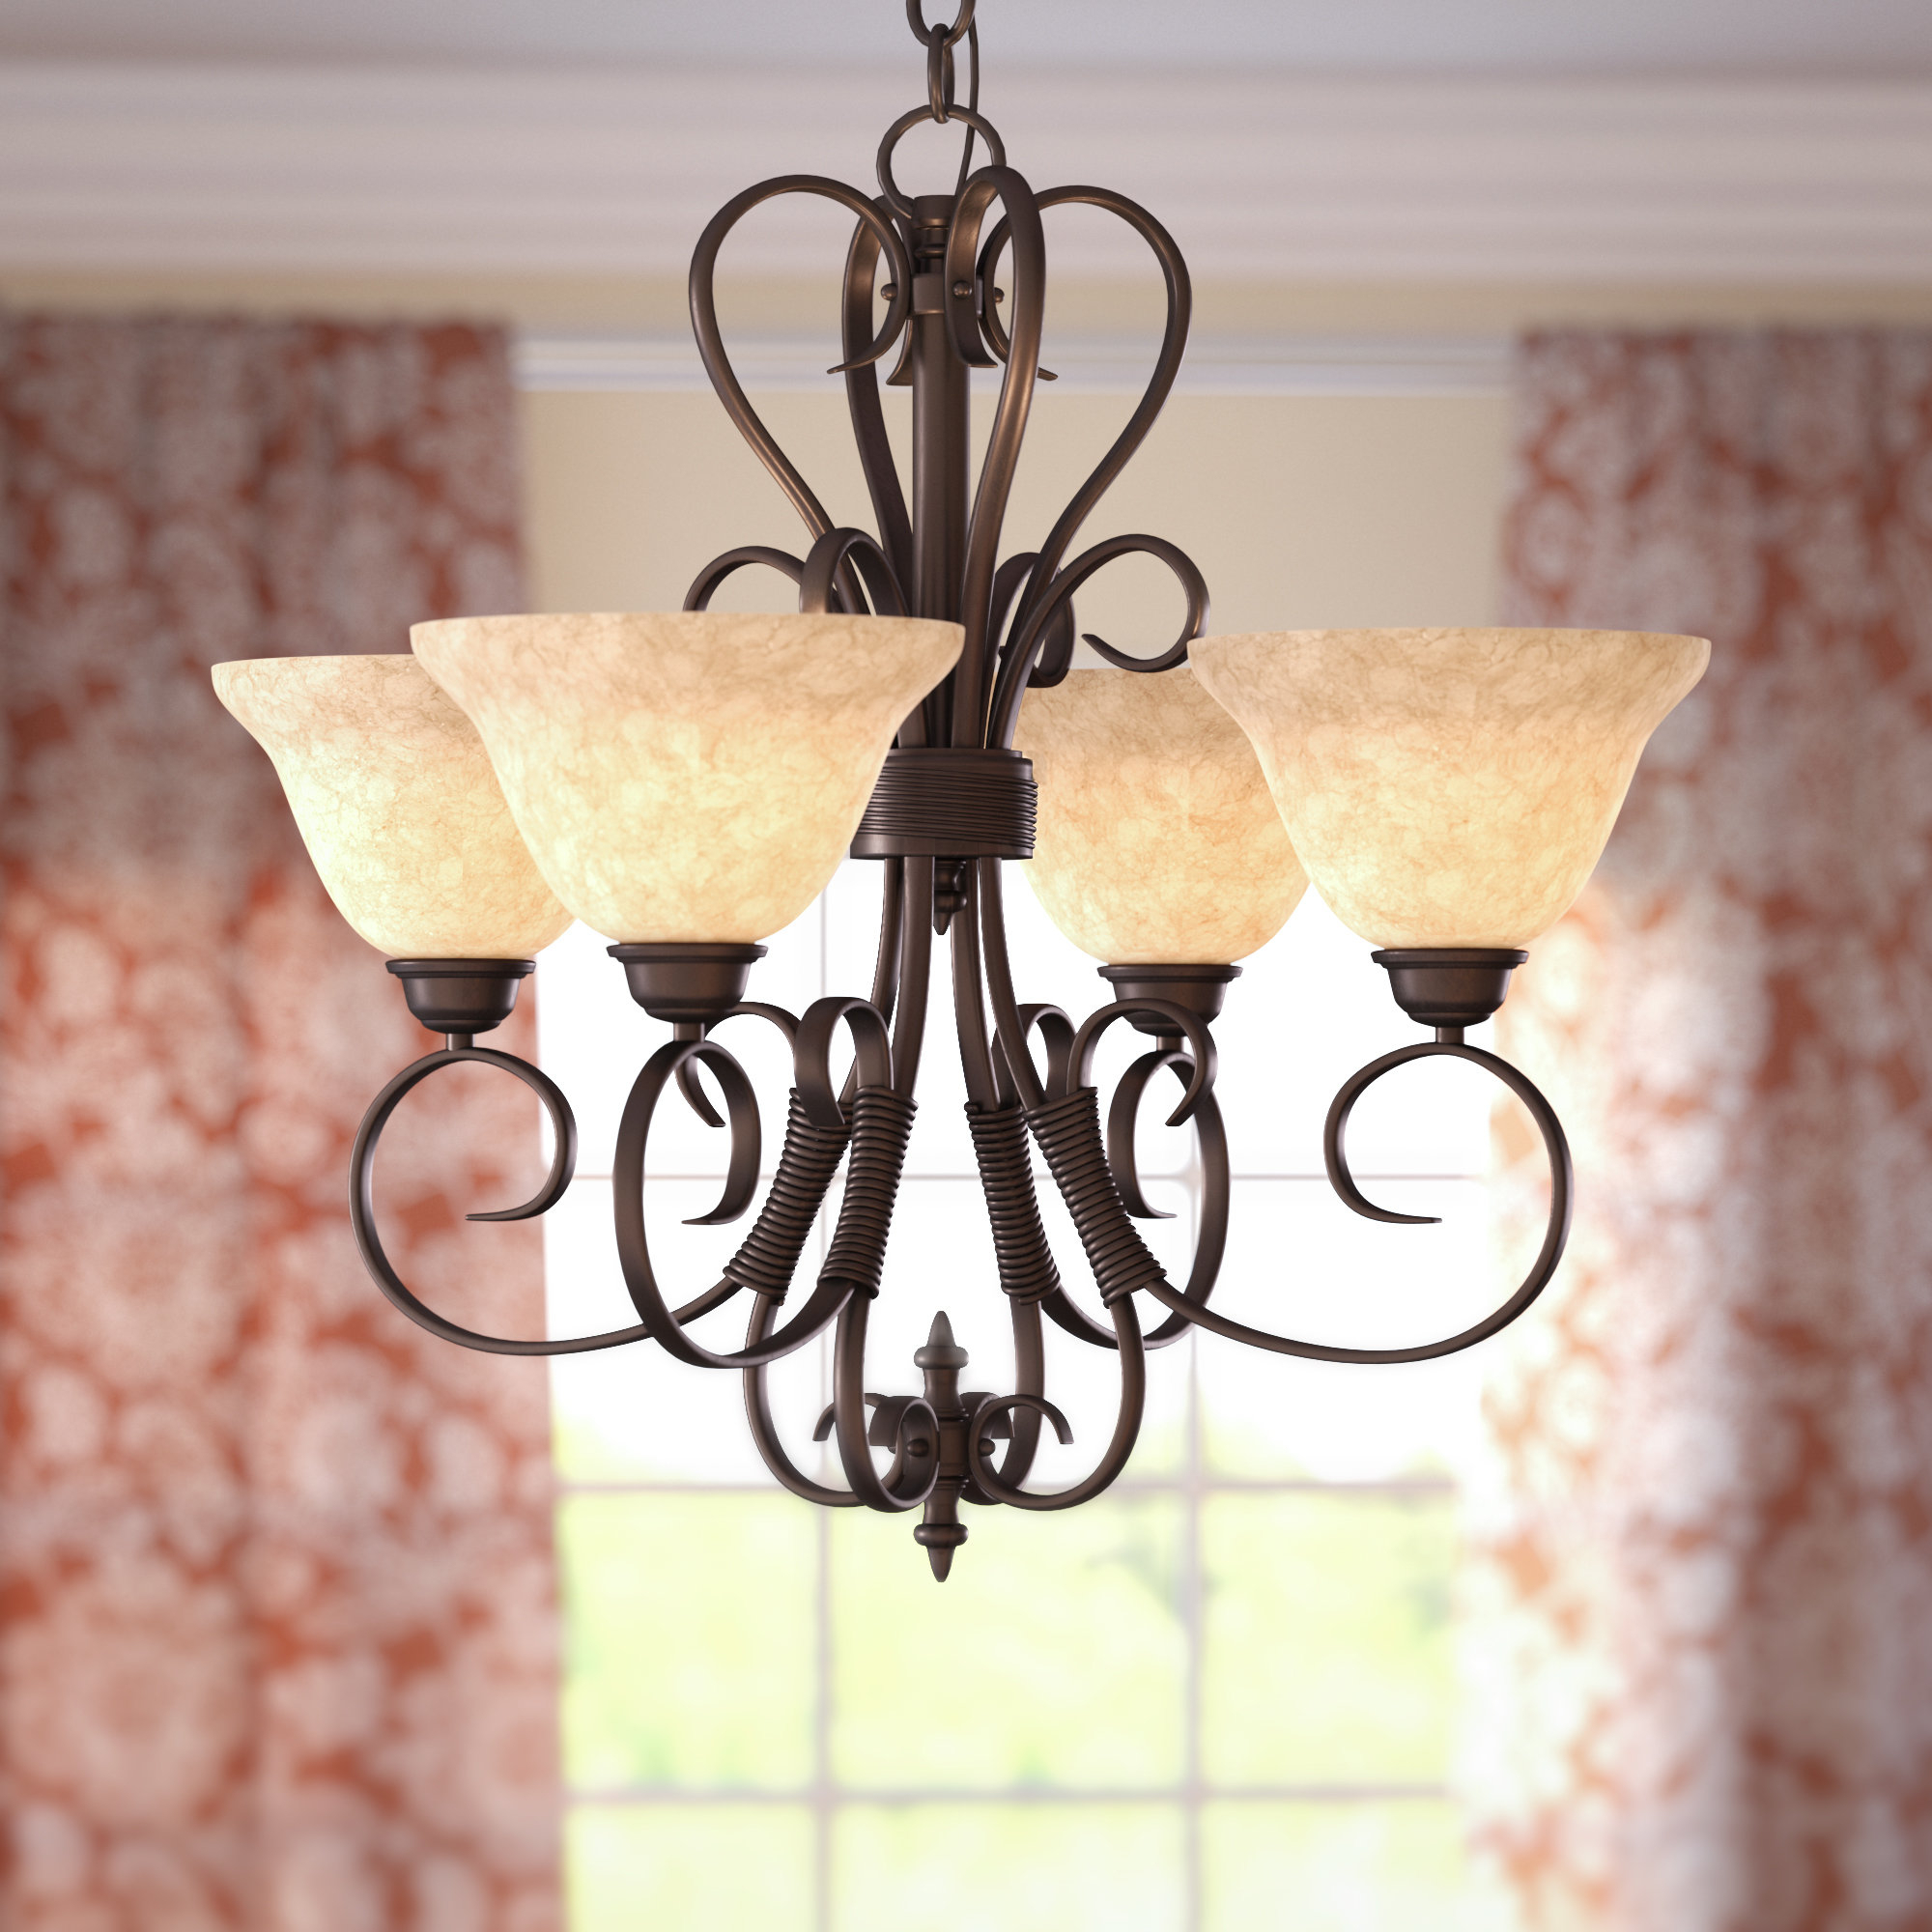 Gaines 5 Light Shaded Chandeliers For Best And Newest Gaines 4 Light Shaded Chandelier (Gallery 8 of 20)